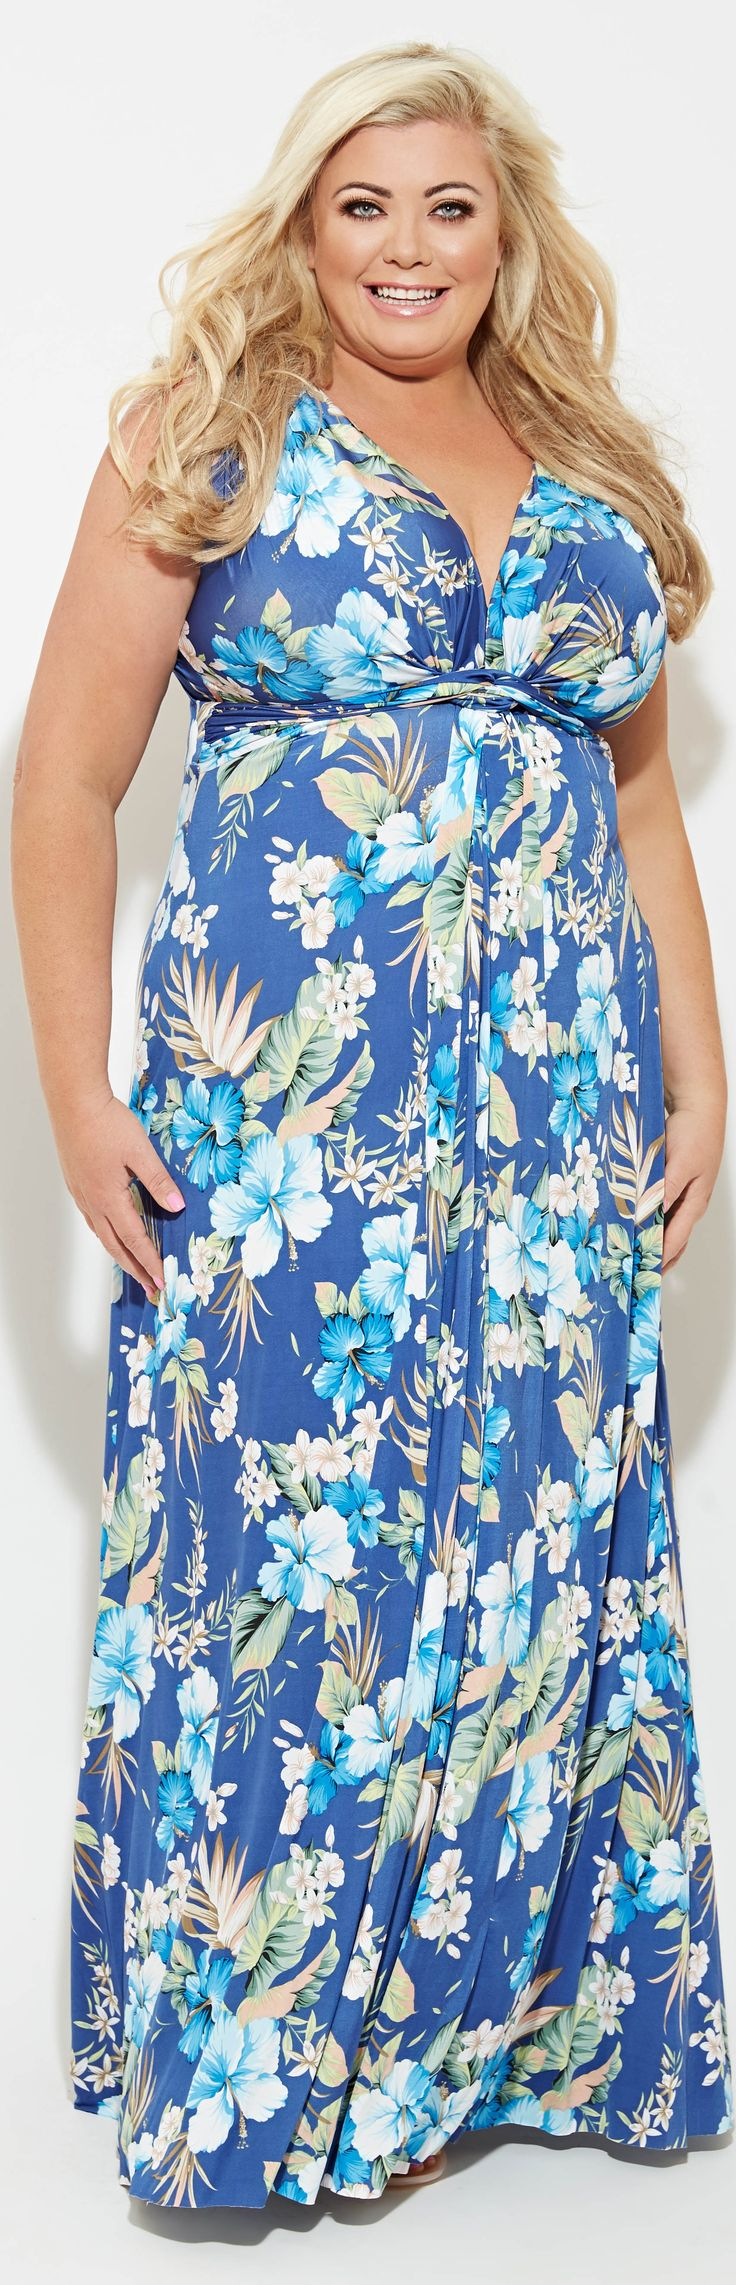 5260e5f14908307ad0cb8c7606a39b9a need a vacation hawaiian print 225 best plus size clothing for women over 40, 50, 60 images on,Womens Clothing 50 Plus